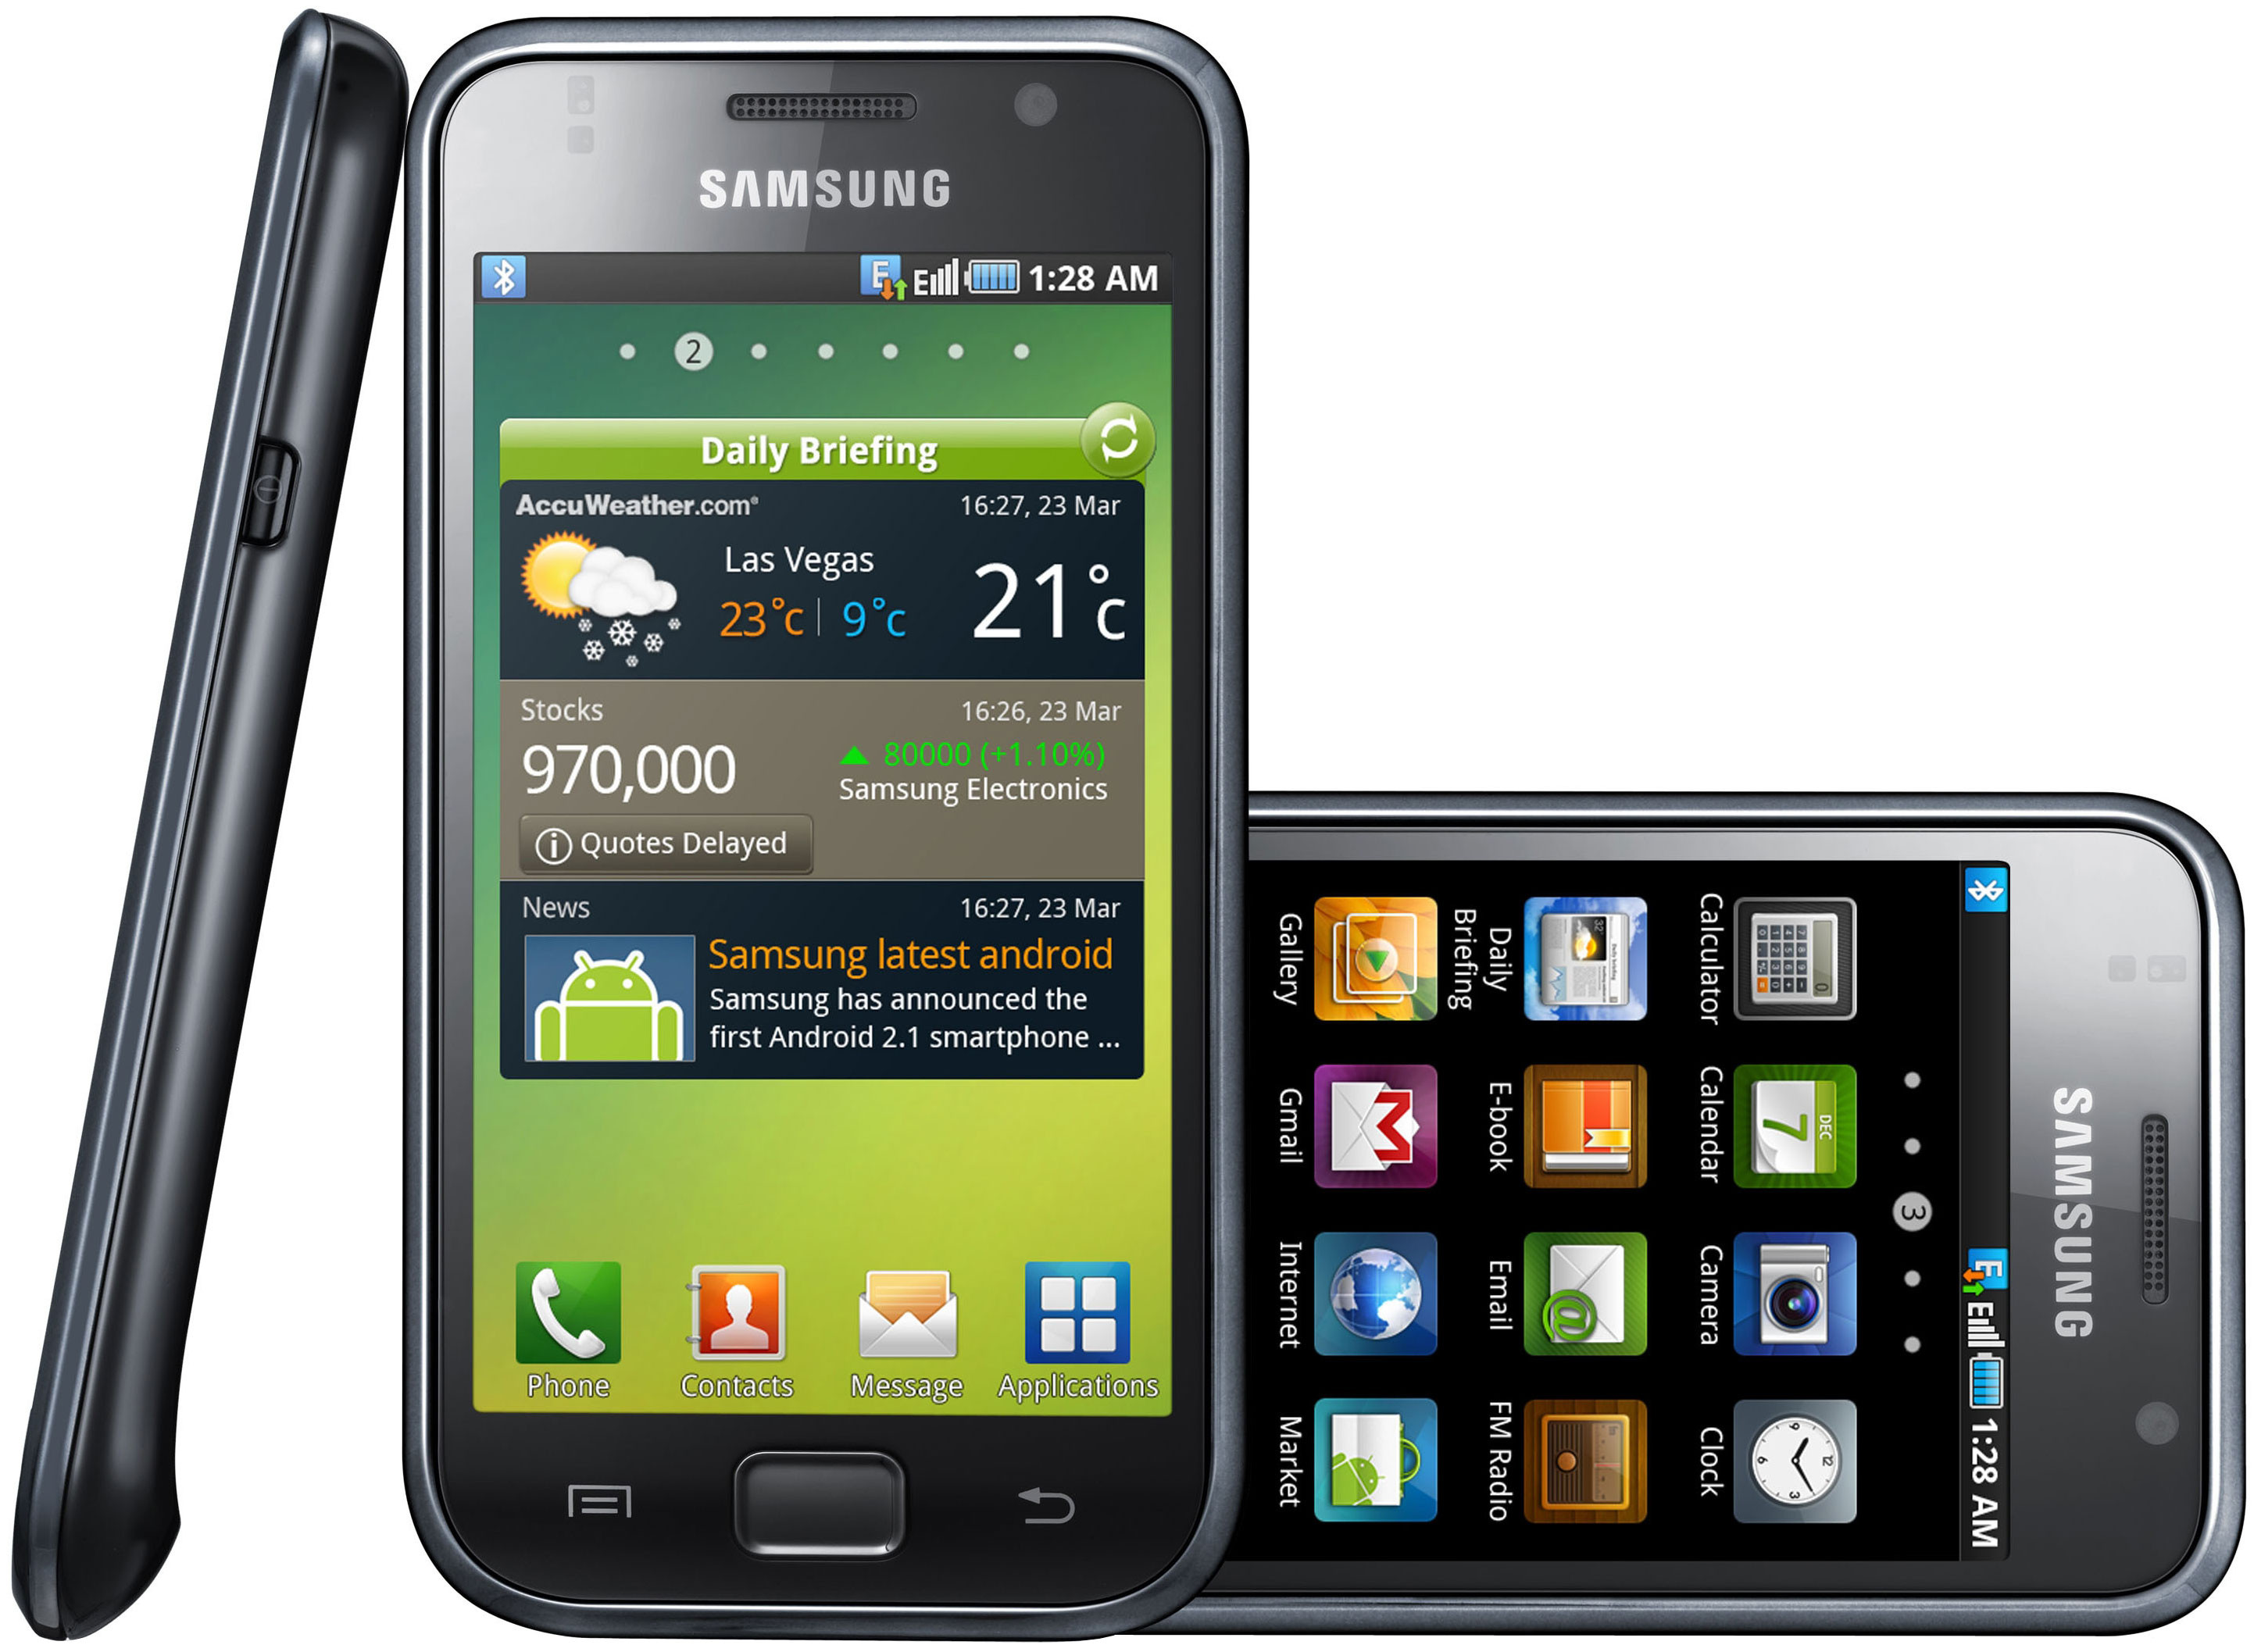 Samsung Galaxy S I9000 8 GB